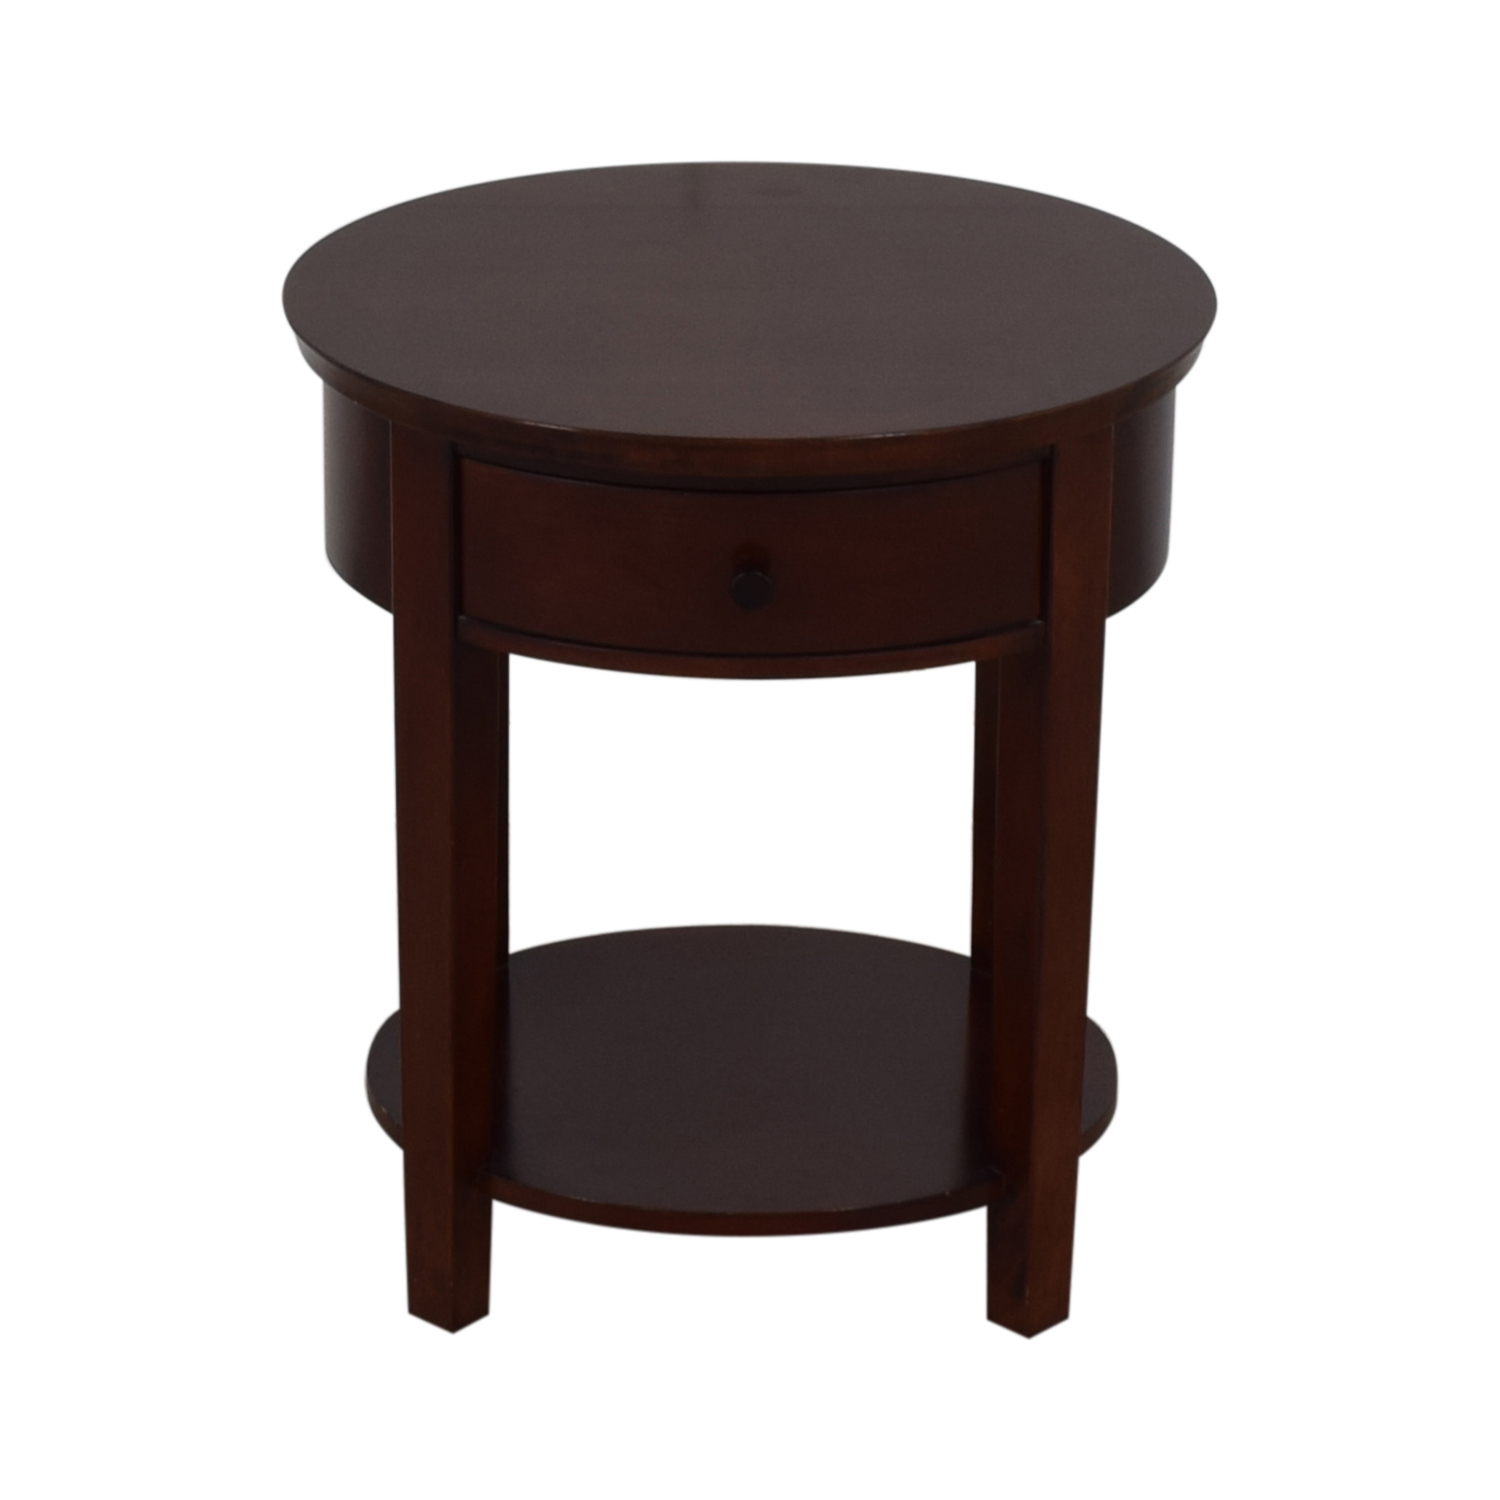 Pottery Barn Pottery Barn End Table discount